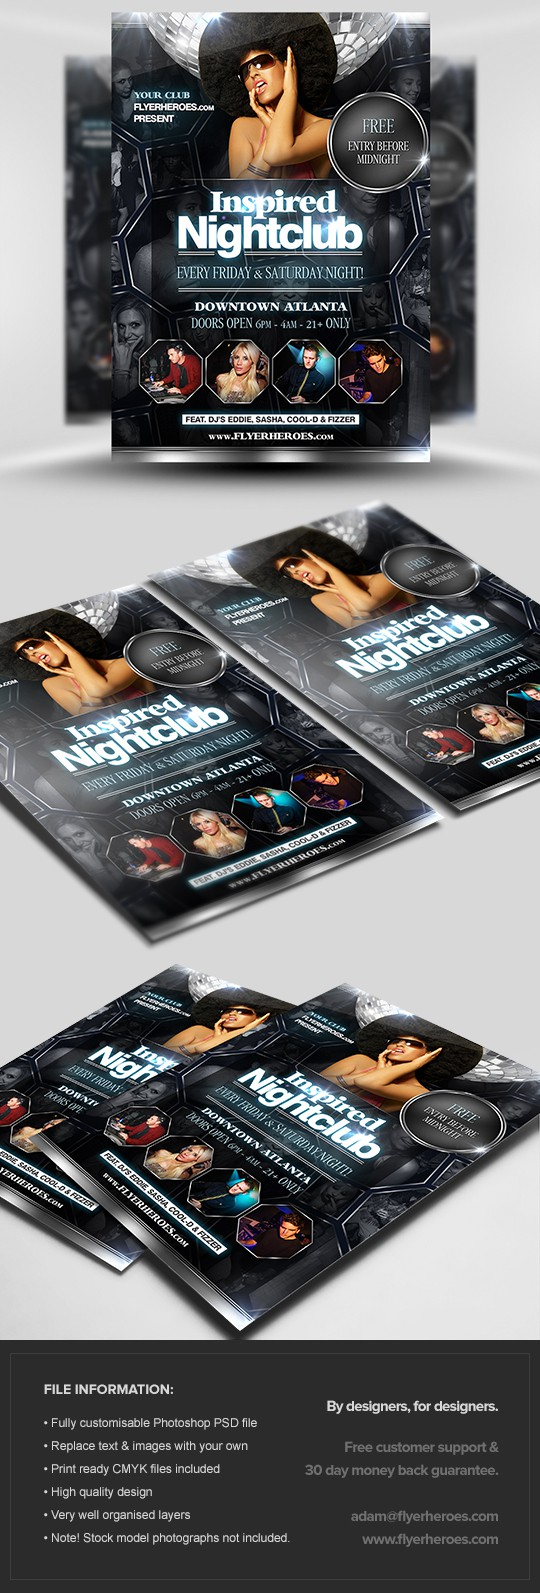 Inspired Nightclub Flyer Template